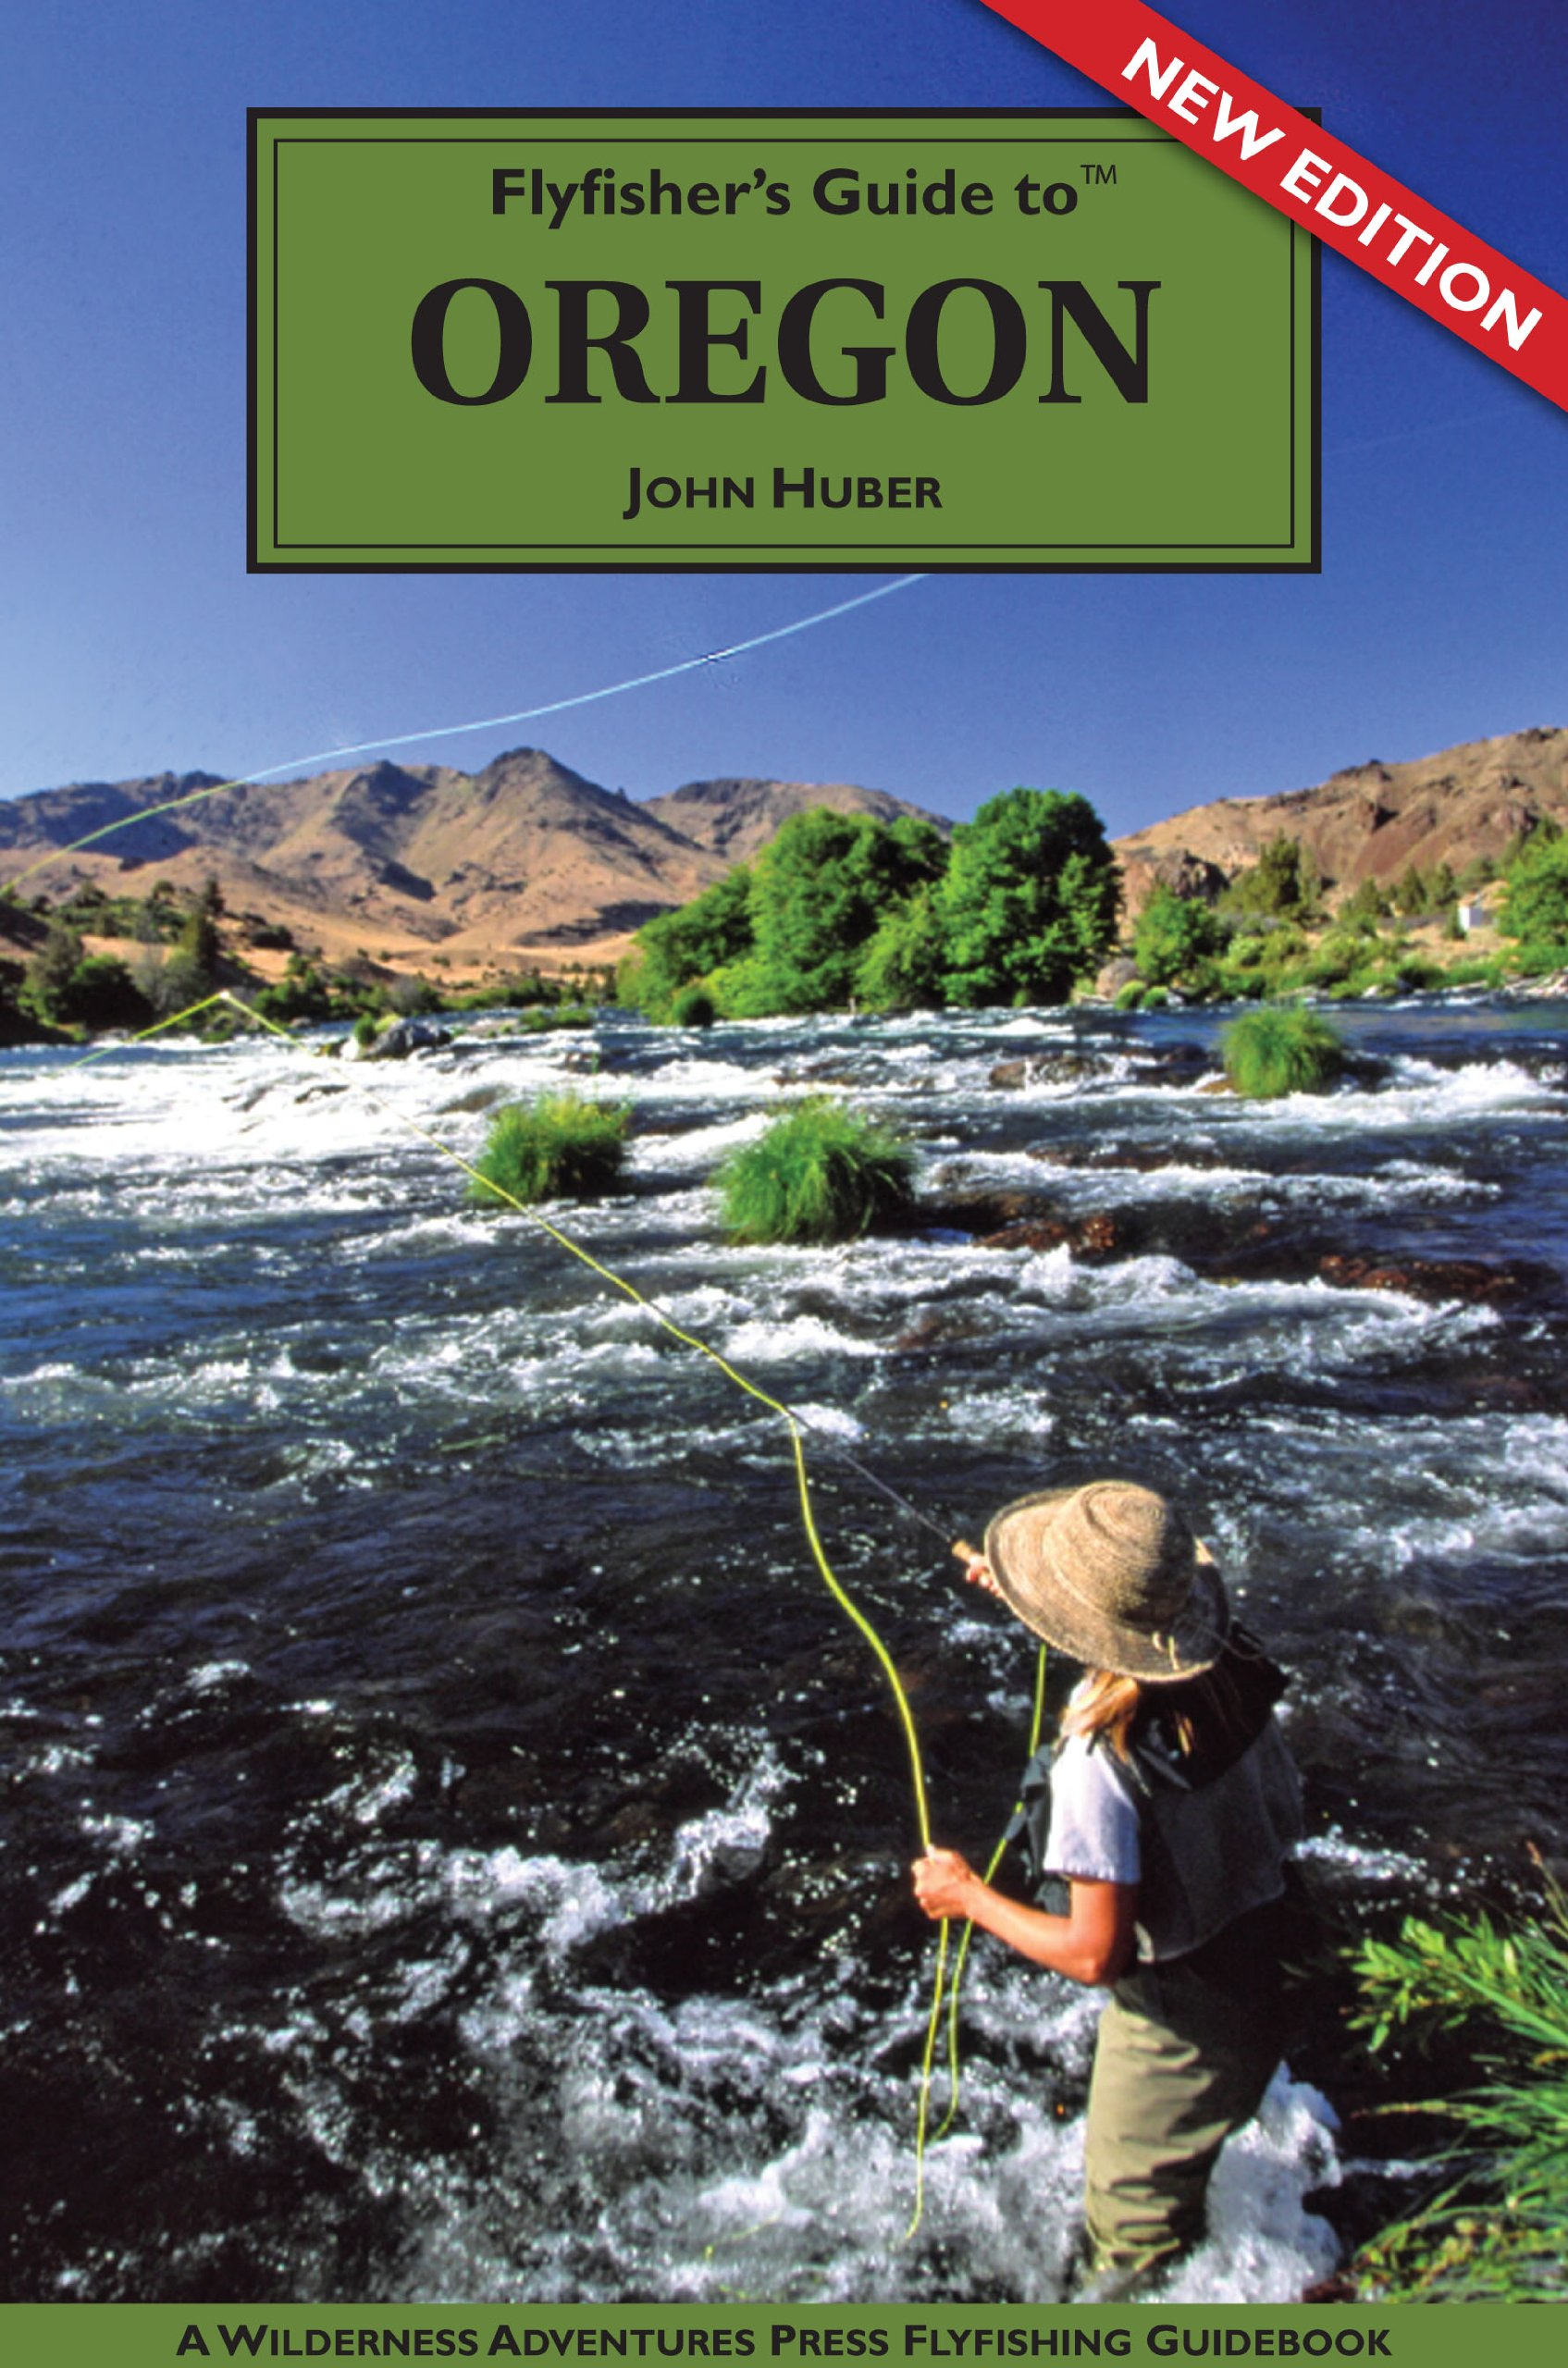 Flyfishers Guide Oregon Wilderness Adventures product image